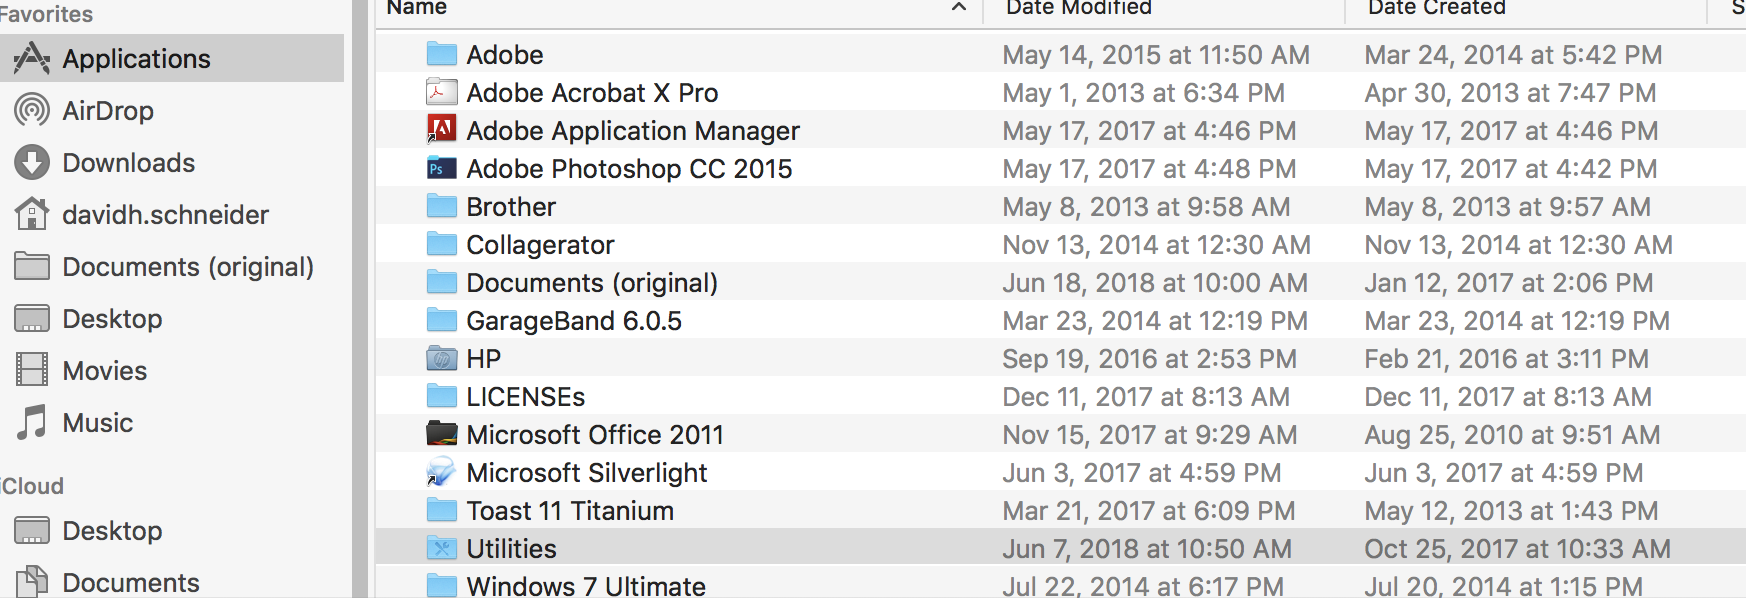 adobe application manager download windows 7